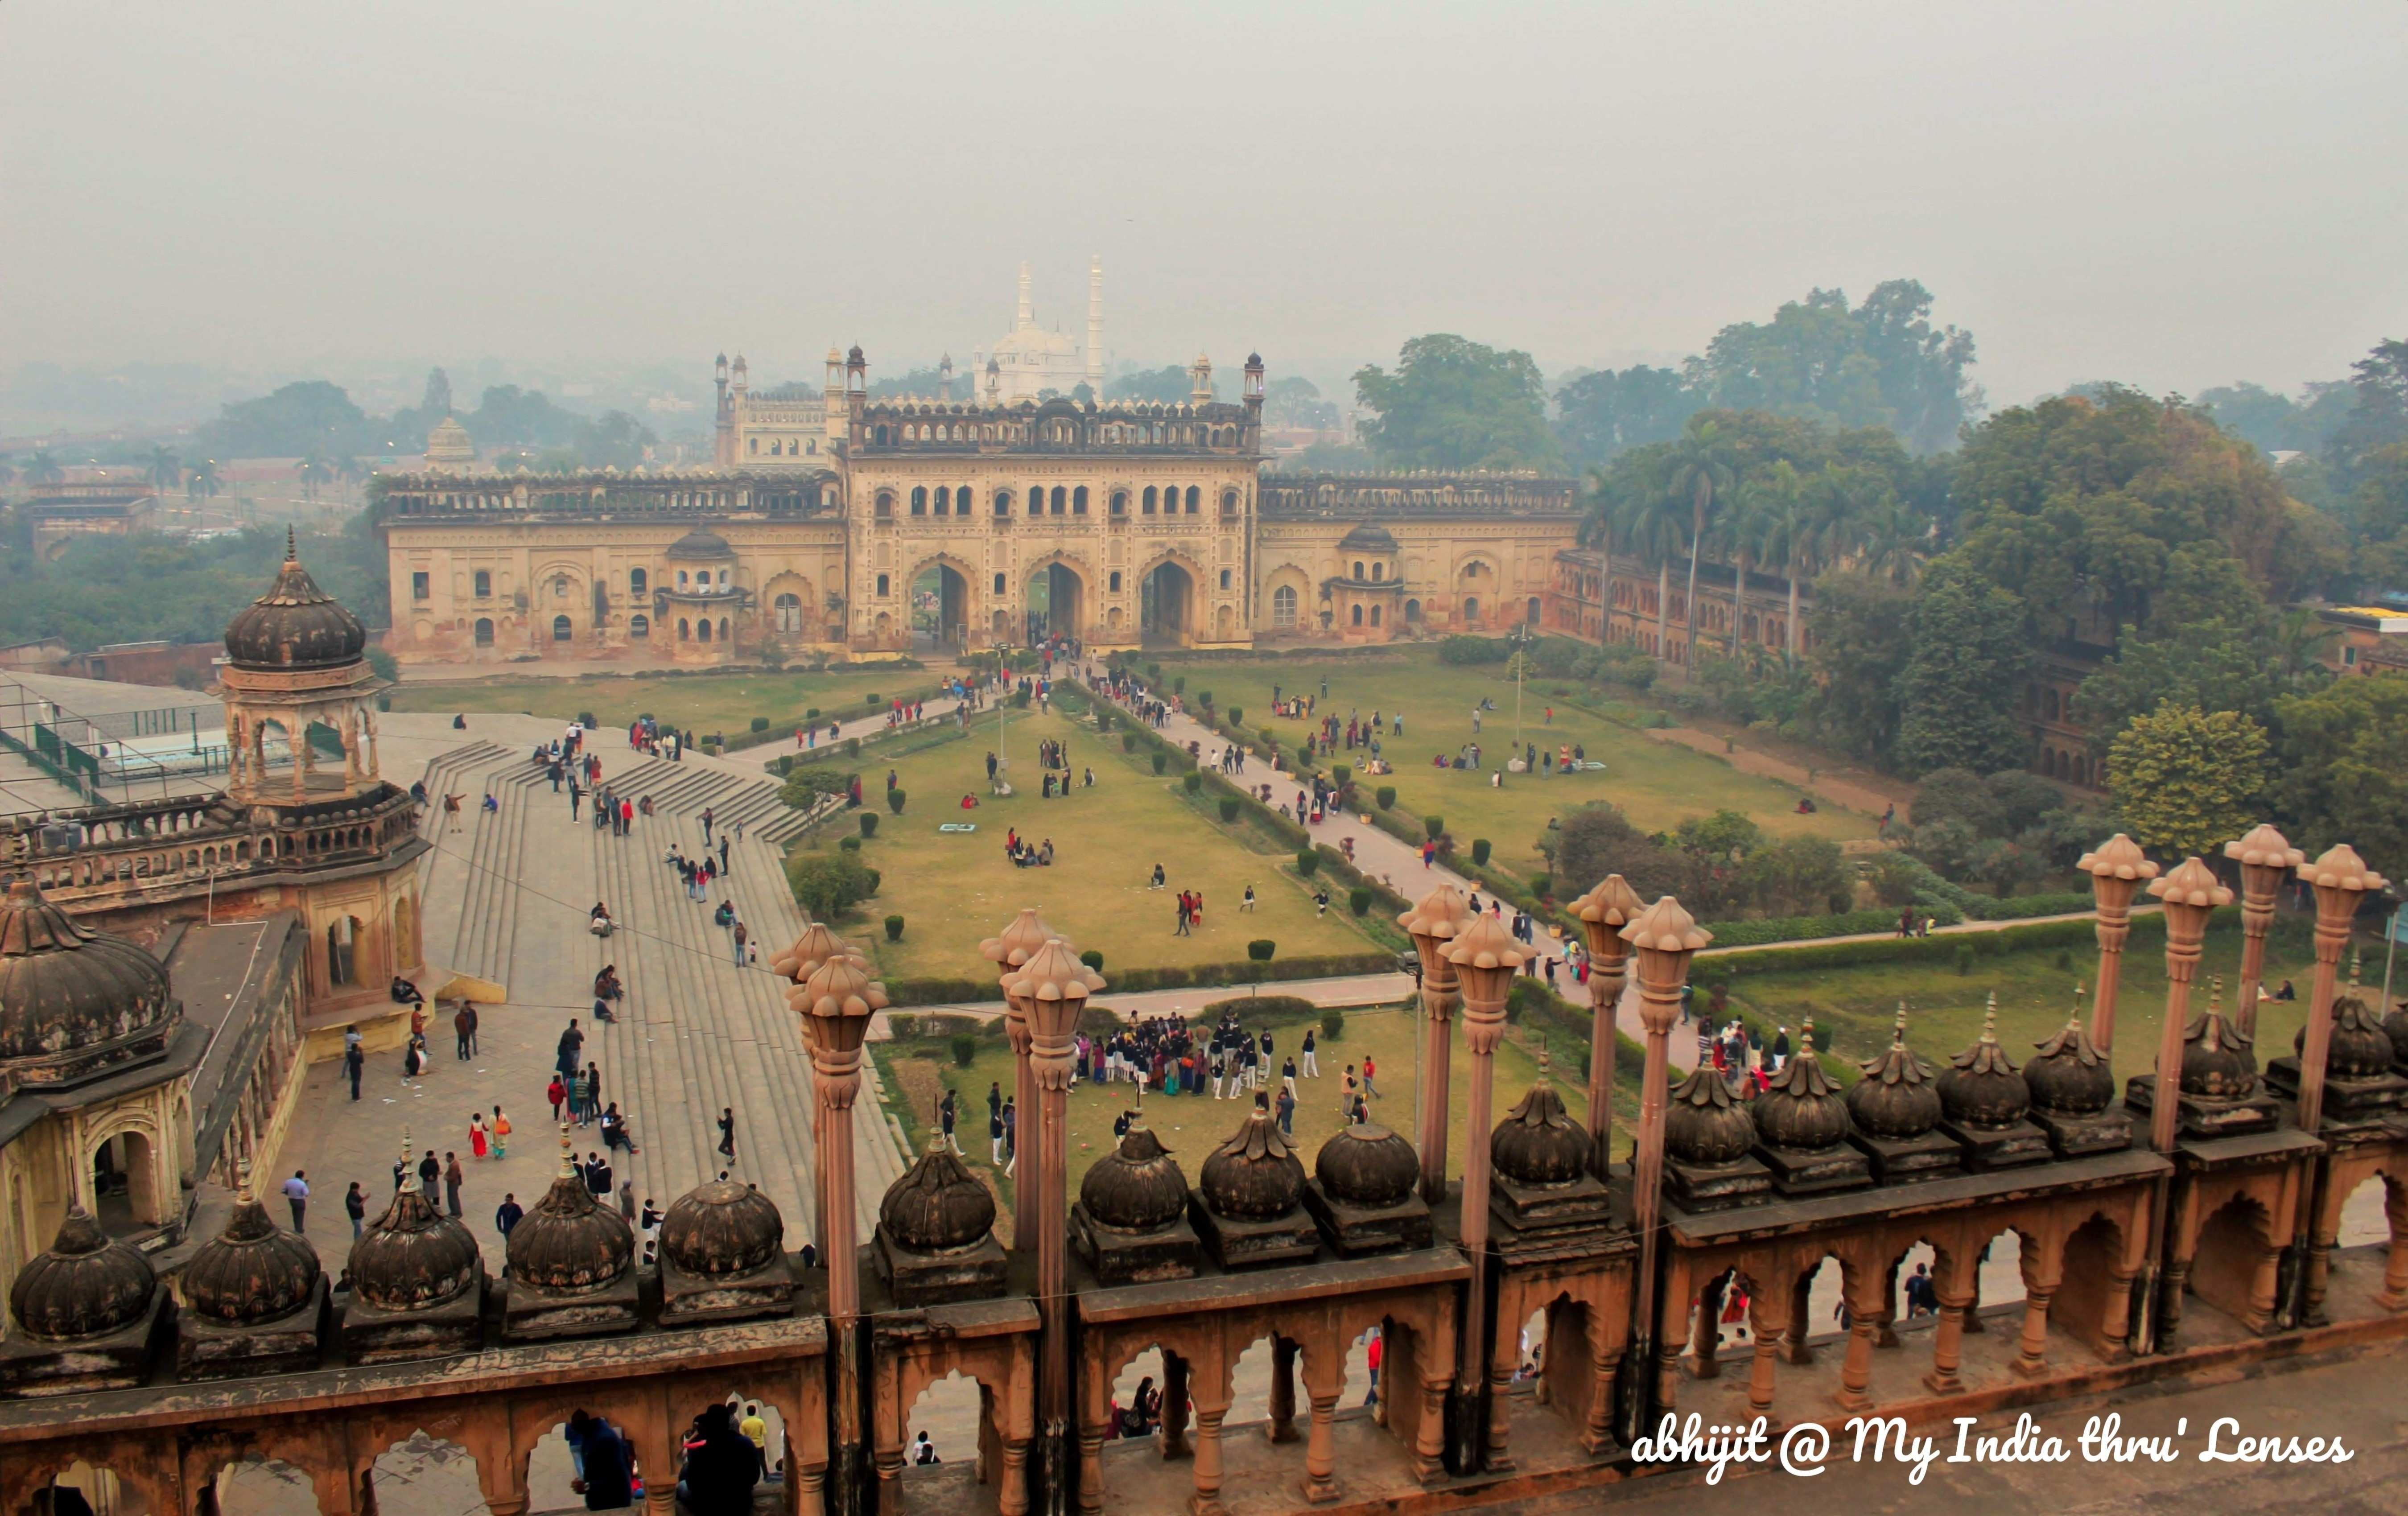 View of the Bara Imambara Complex from the Top of Imambara